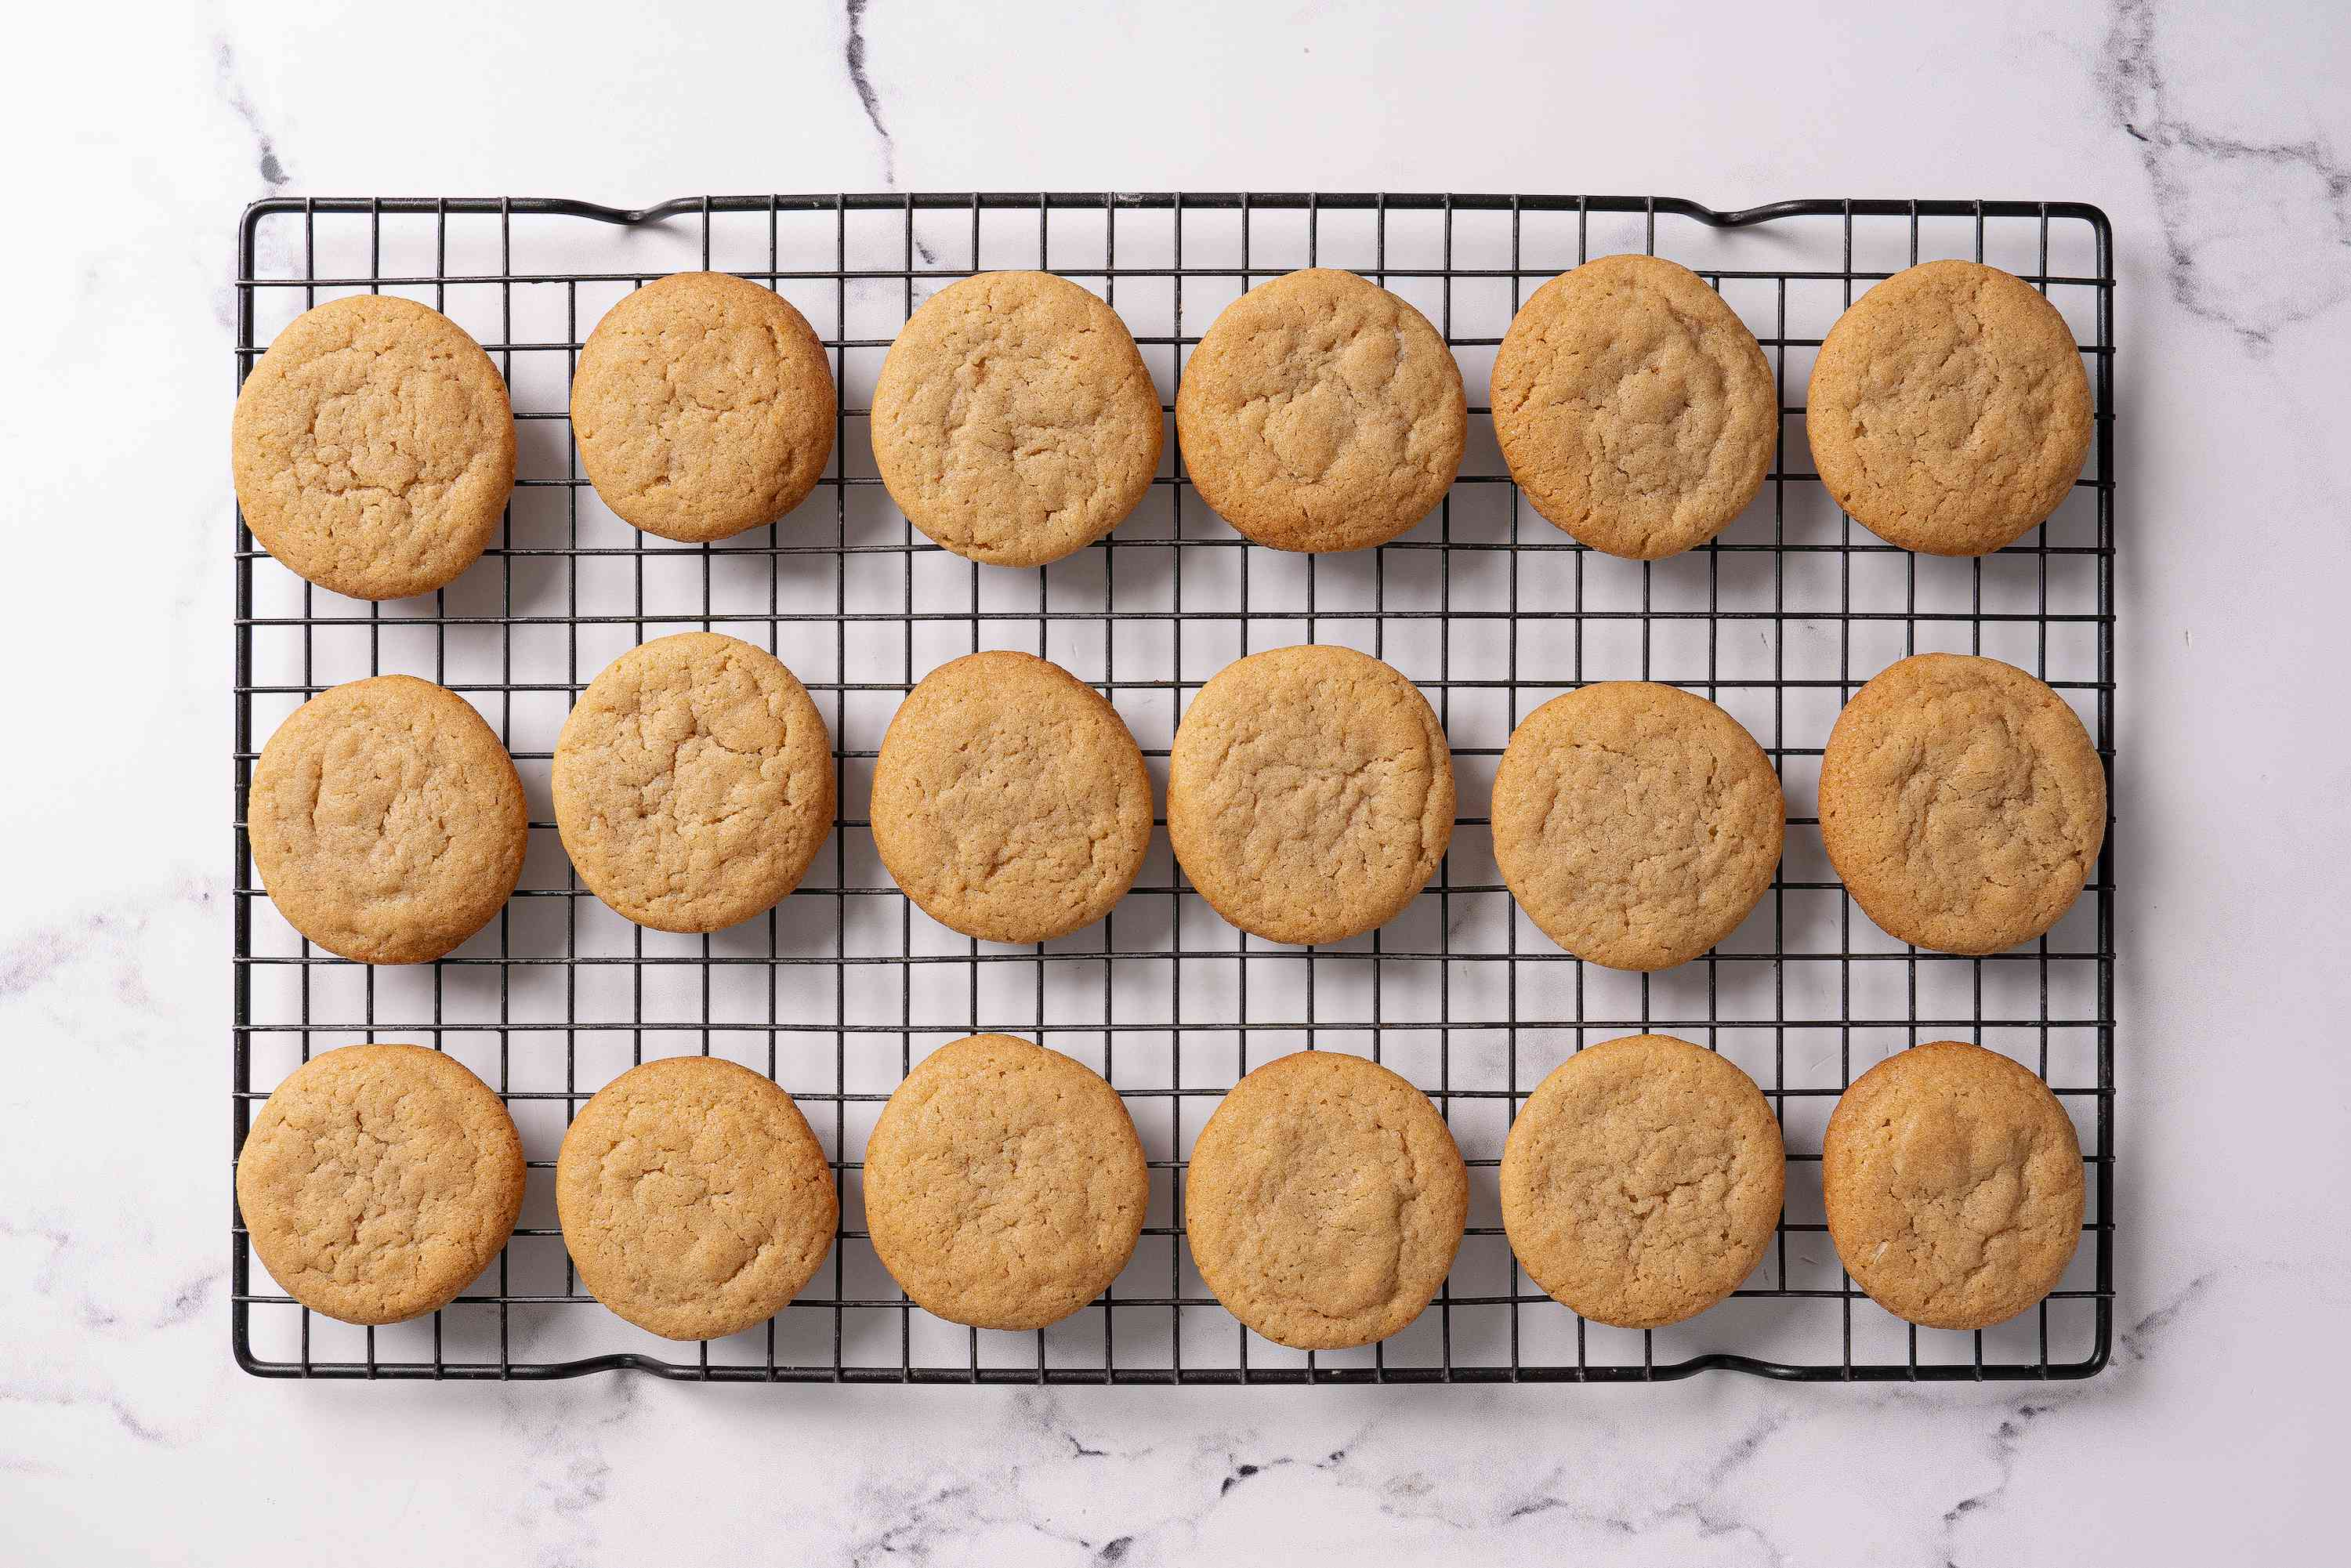 Salted caramel cookies cooling on a rack